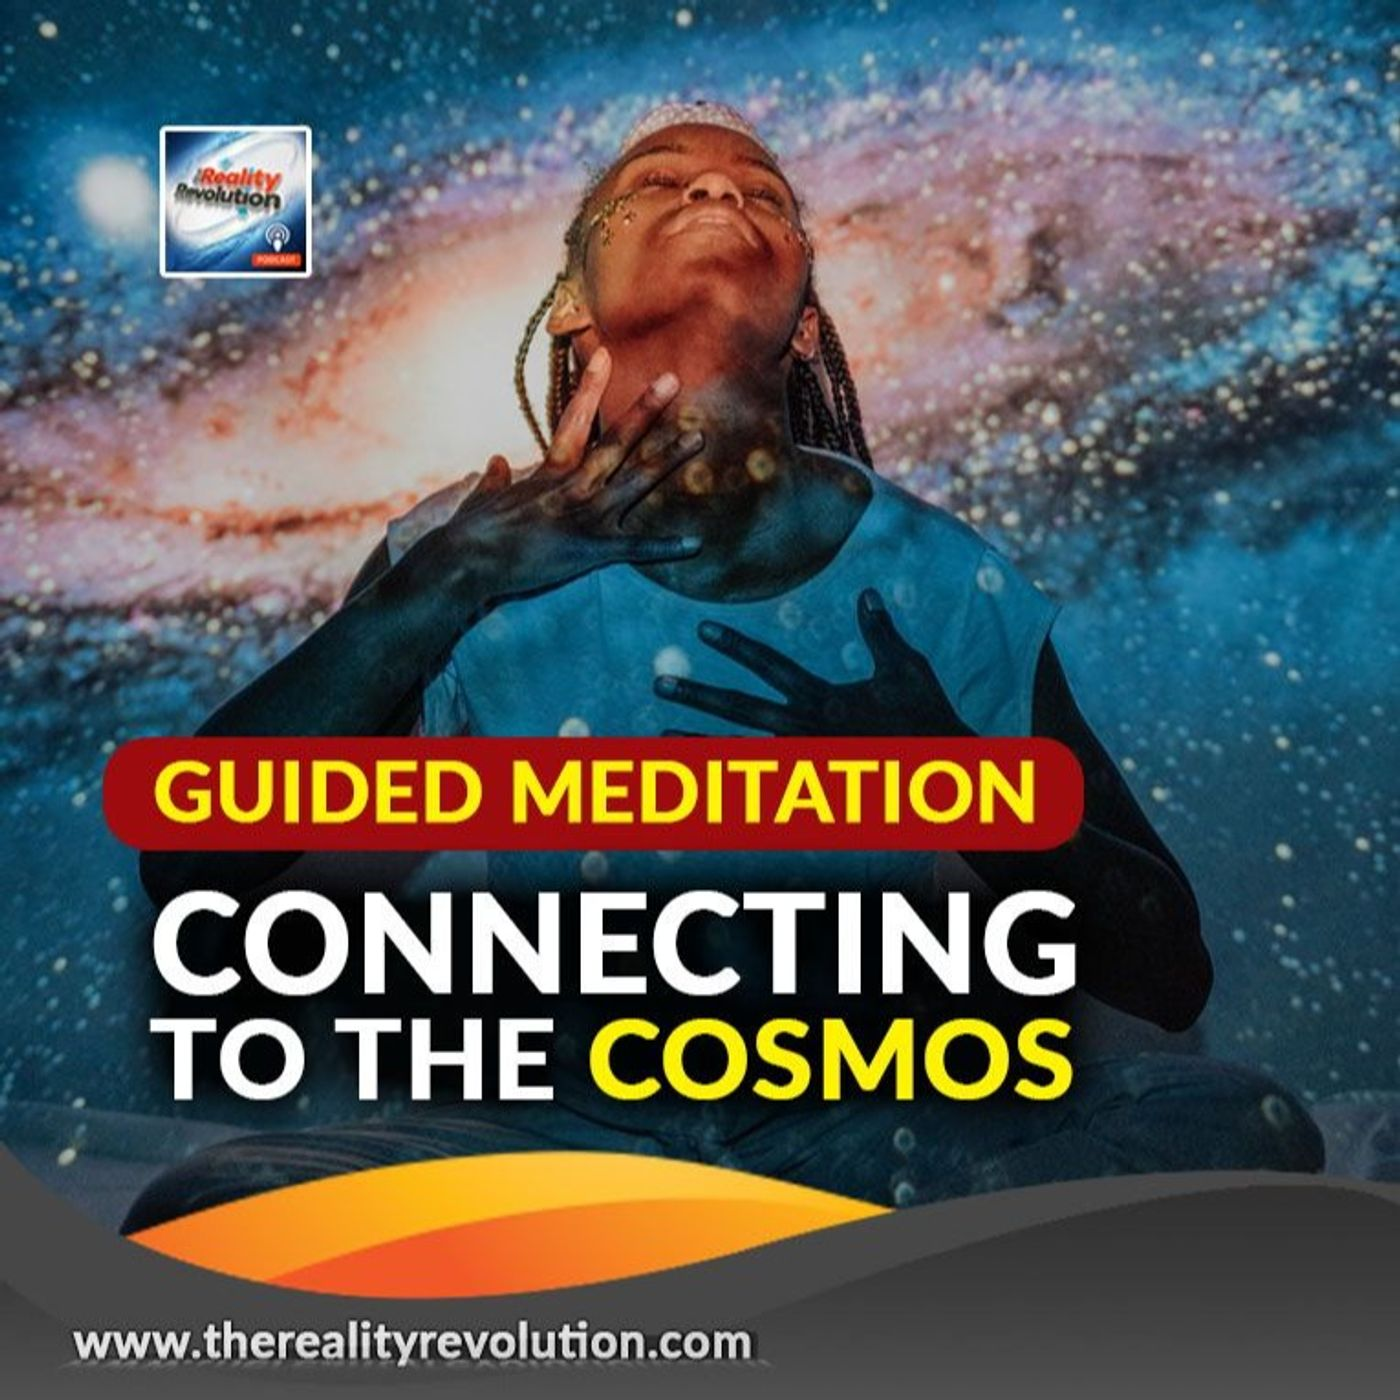 Guided Meditation Connecting To The Cosmos